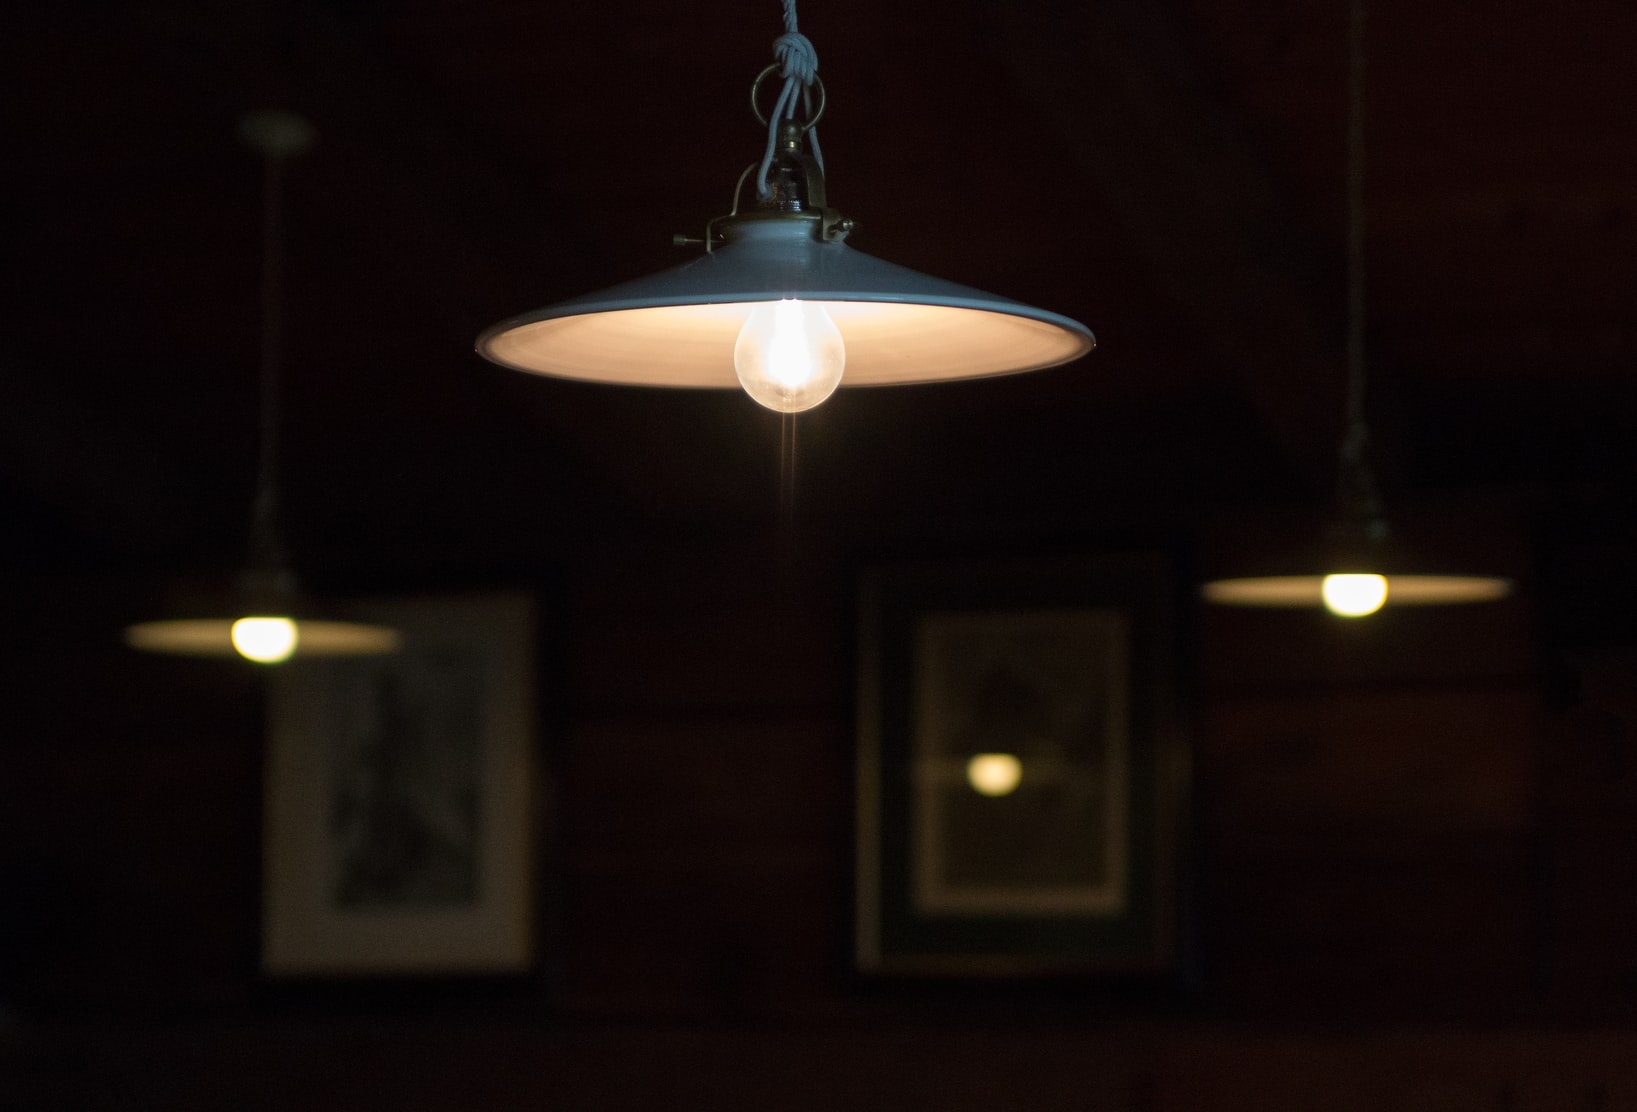 can i use an incandescent dimmer with led lights